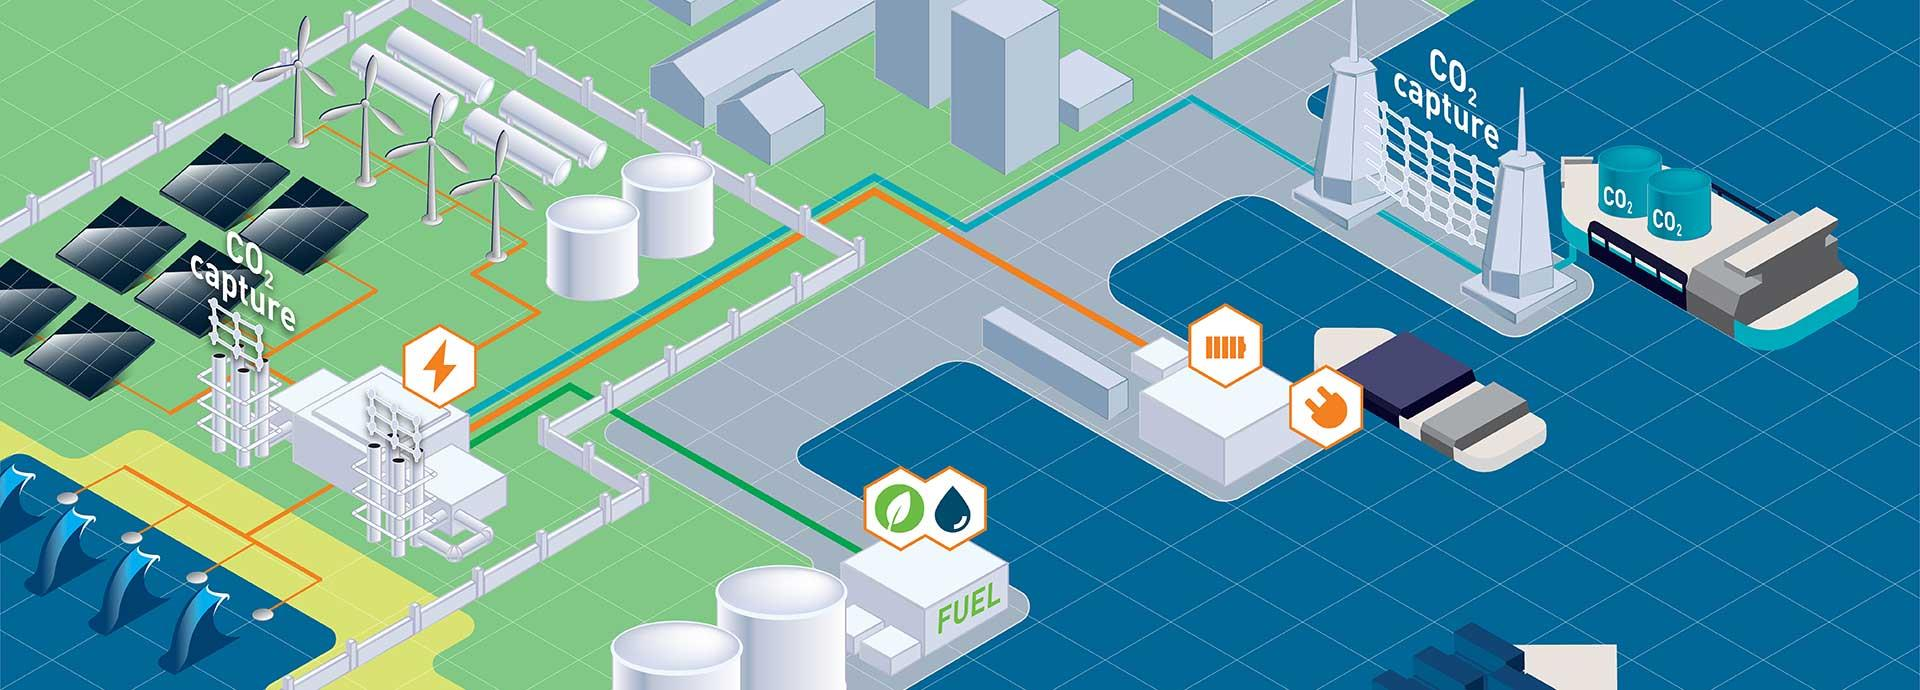 Creating the clean, innovative port ecosystem of the future